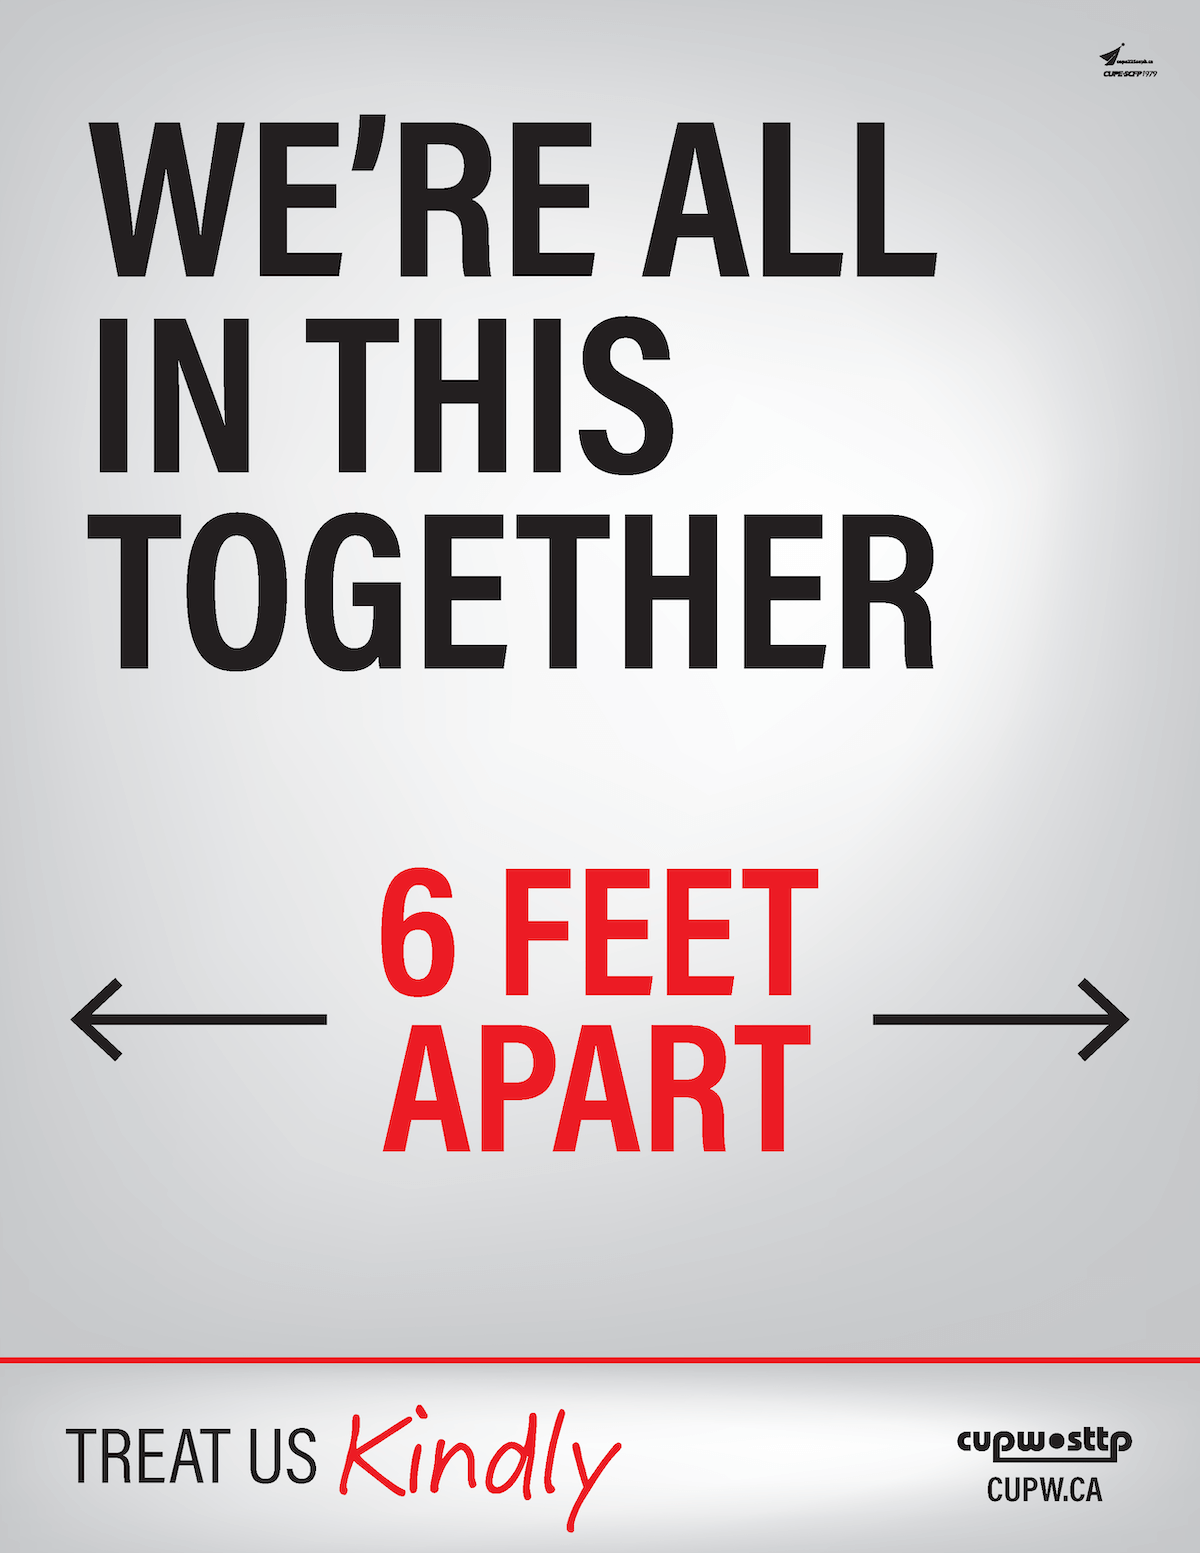 Download and Print: Physical Distancing Poster - WE'RE ALL IN THIS TOGETHER - 6 FEET APART